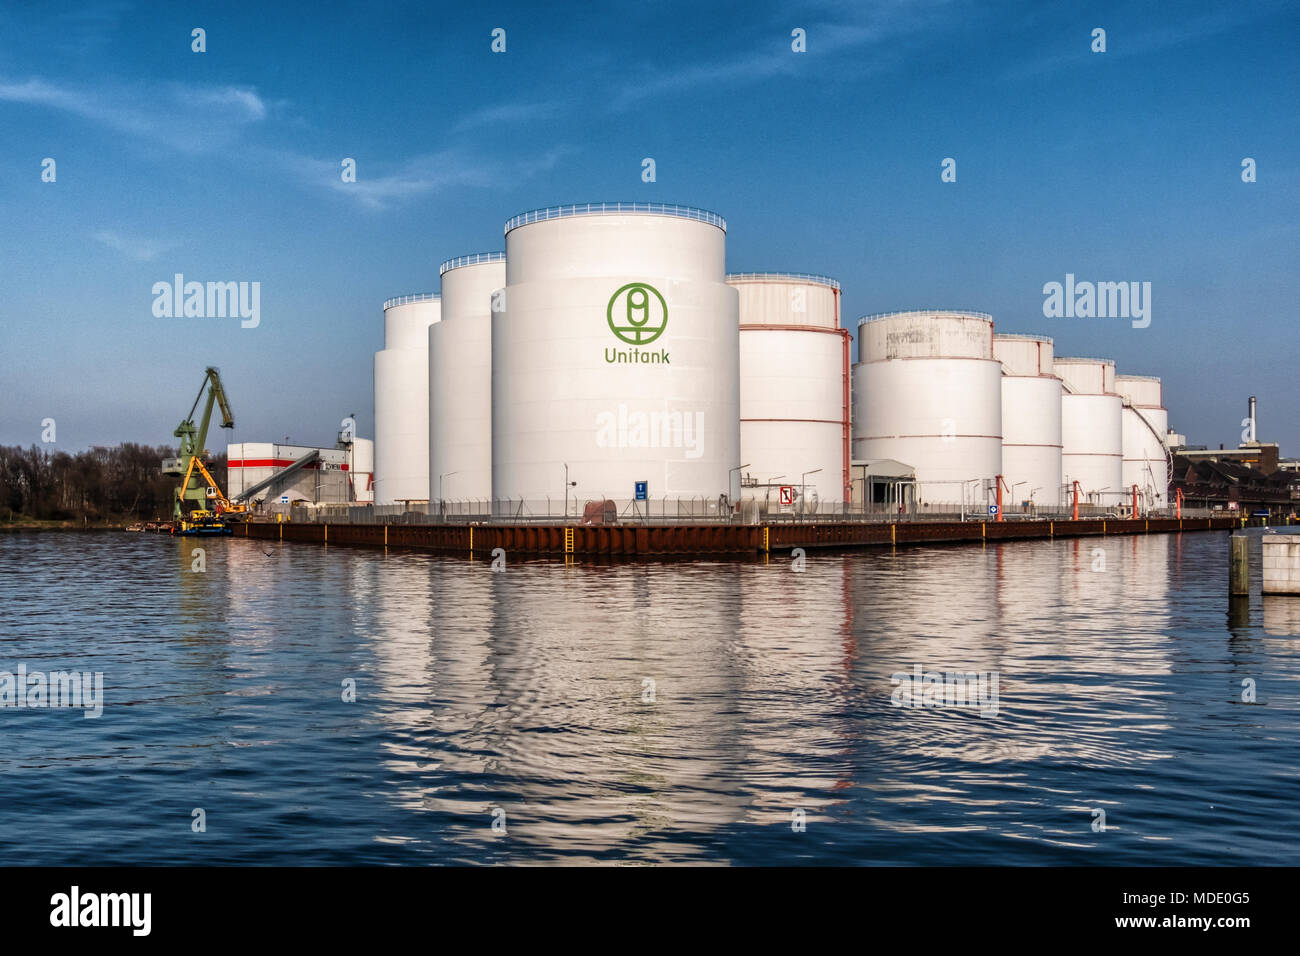 Berlin-Moabit,Westhafen,West Harbour, UNITANK tank farm business for the storage and product handling of mineral oil products Stock Photo